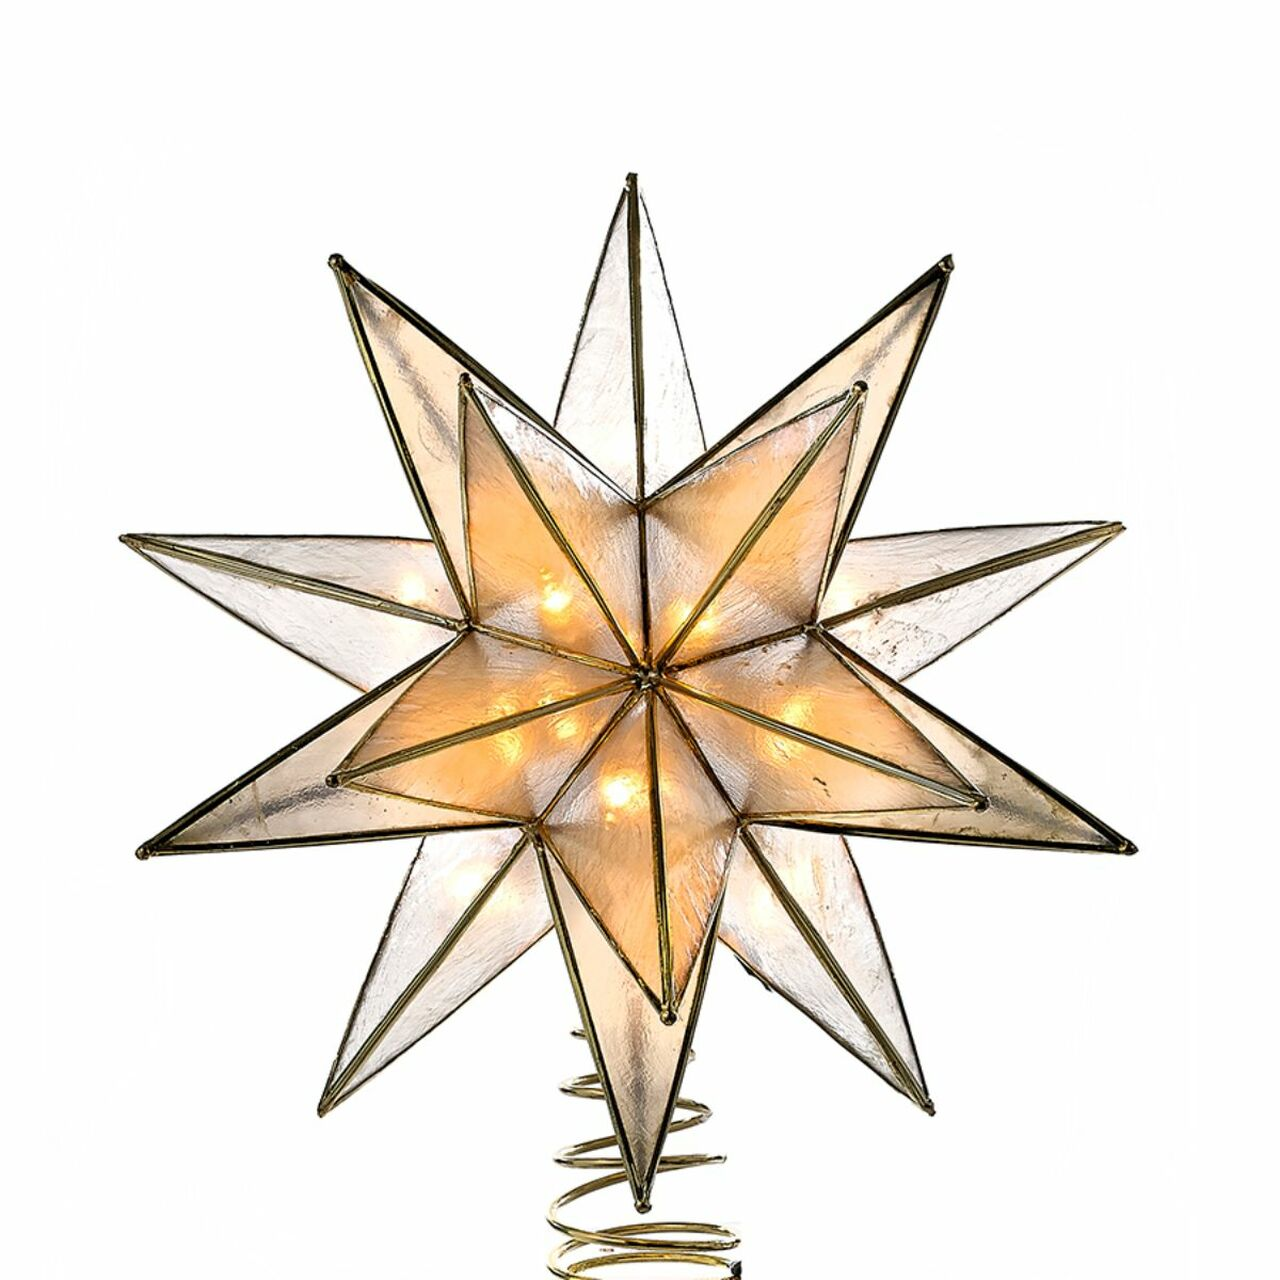 8 25 Lighted 15 Point Star Shaped Christmas Tree Topper Clear Lights 32811136